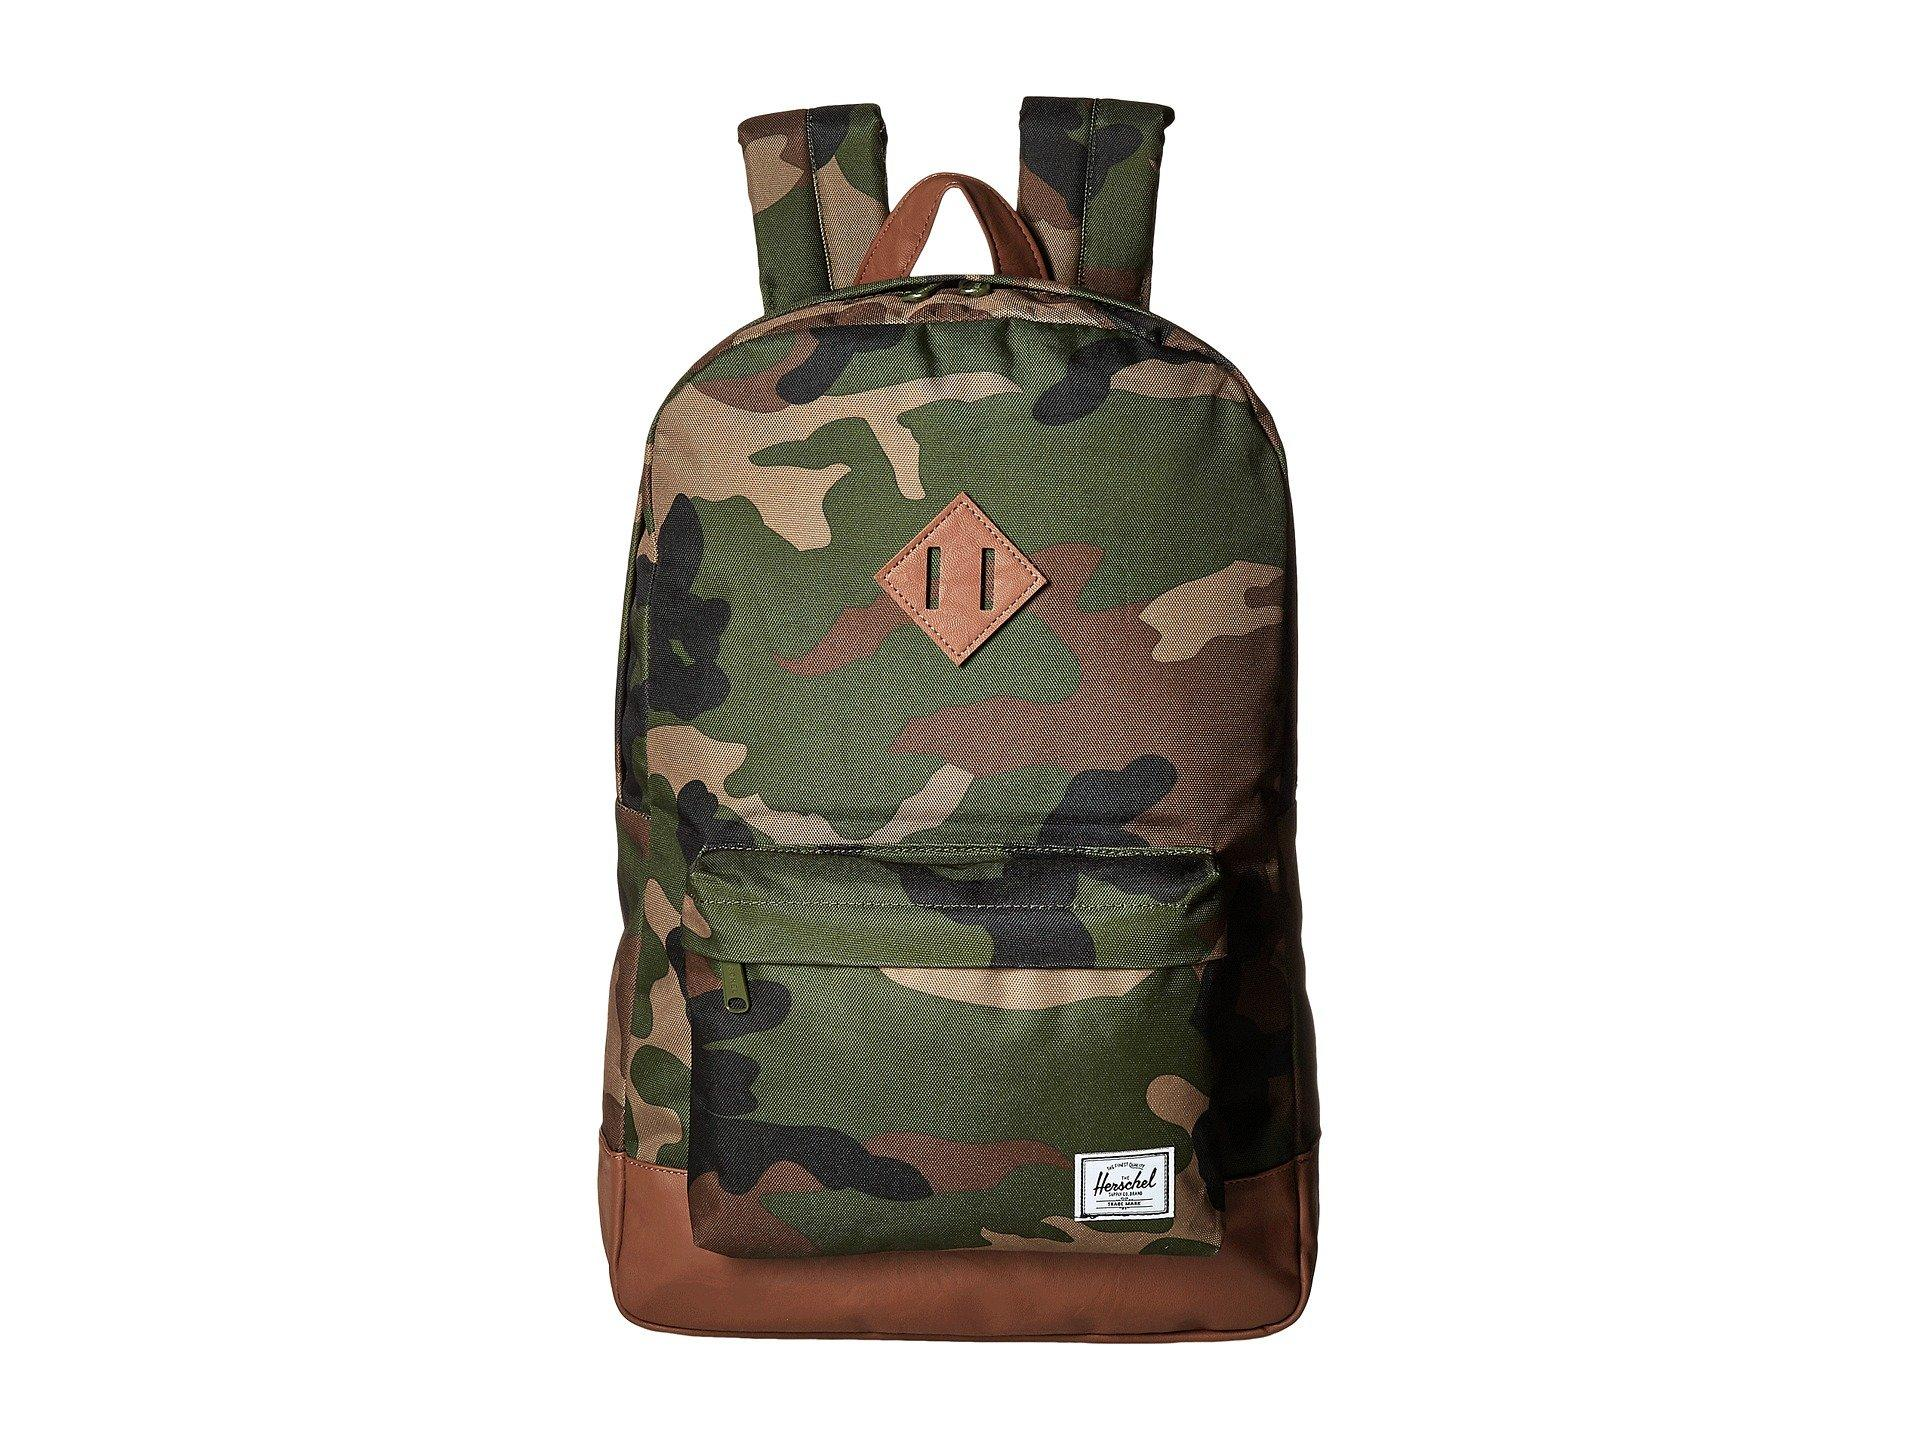 c4ac5a046689 Herschel Supply Co. Men s Heritage (woodland Camo tan Synthetic Leather)  Backpack Bags